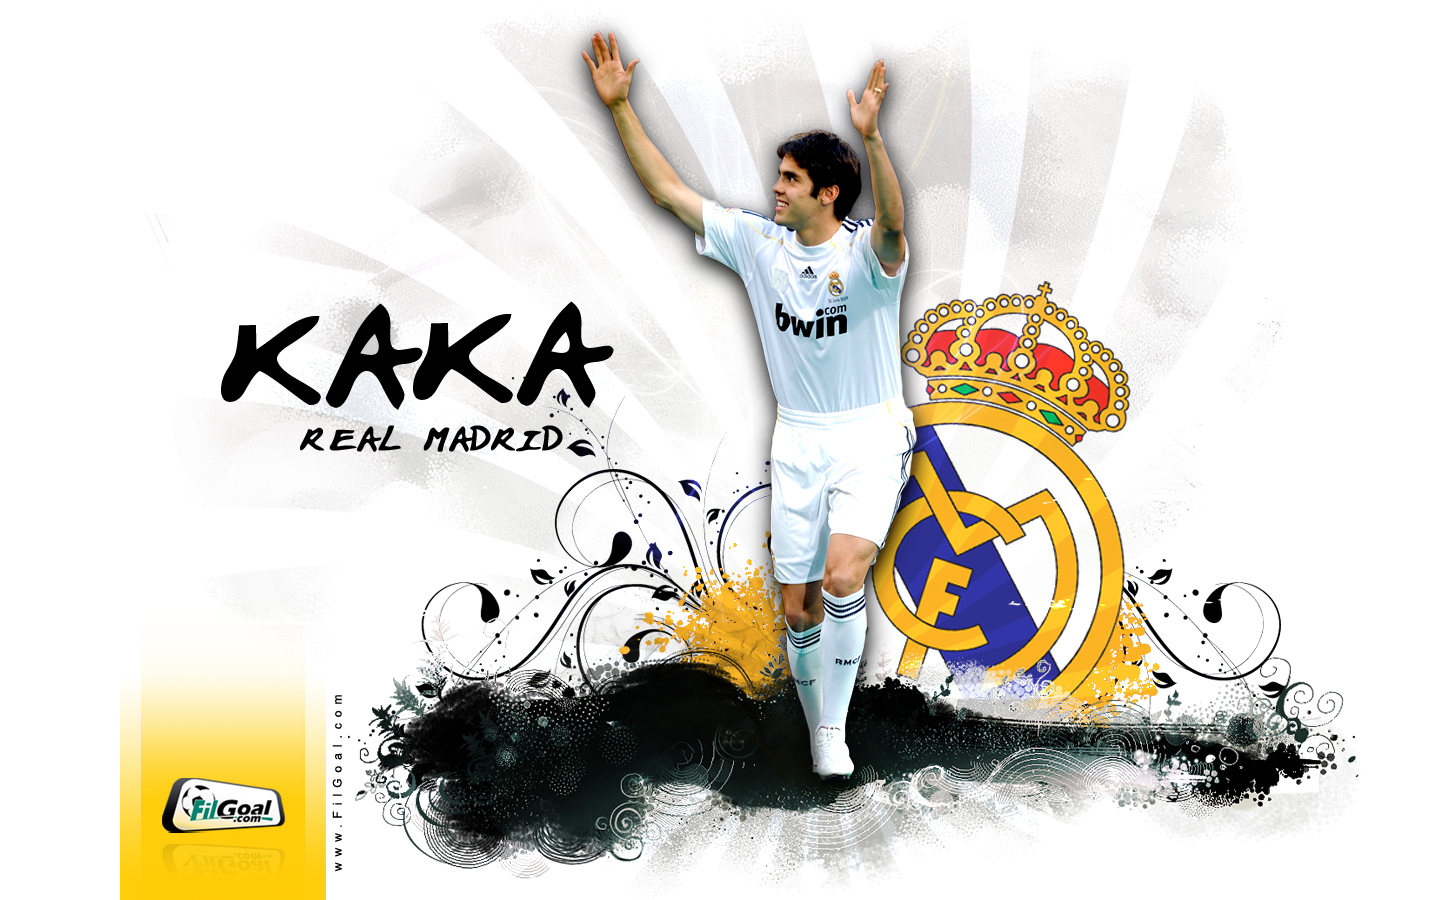 http://2.bp.blogspot.com/-MRtxV0oYWgg/TobY2NQwc7I/AAAAAAAAC9k/r1Mt_SUiCKA/s1600/kaka-realmadrid-wallpapers-download-real-madrid.jpg